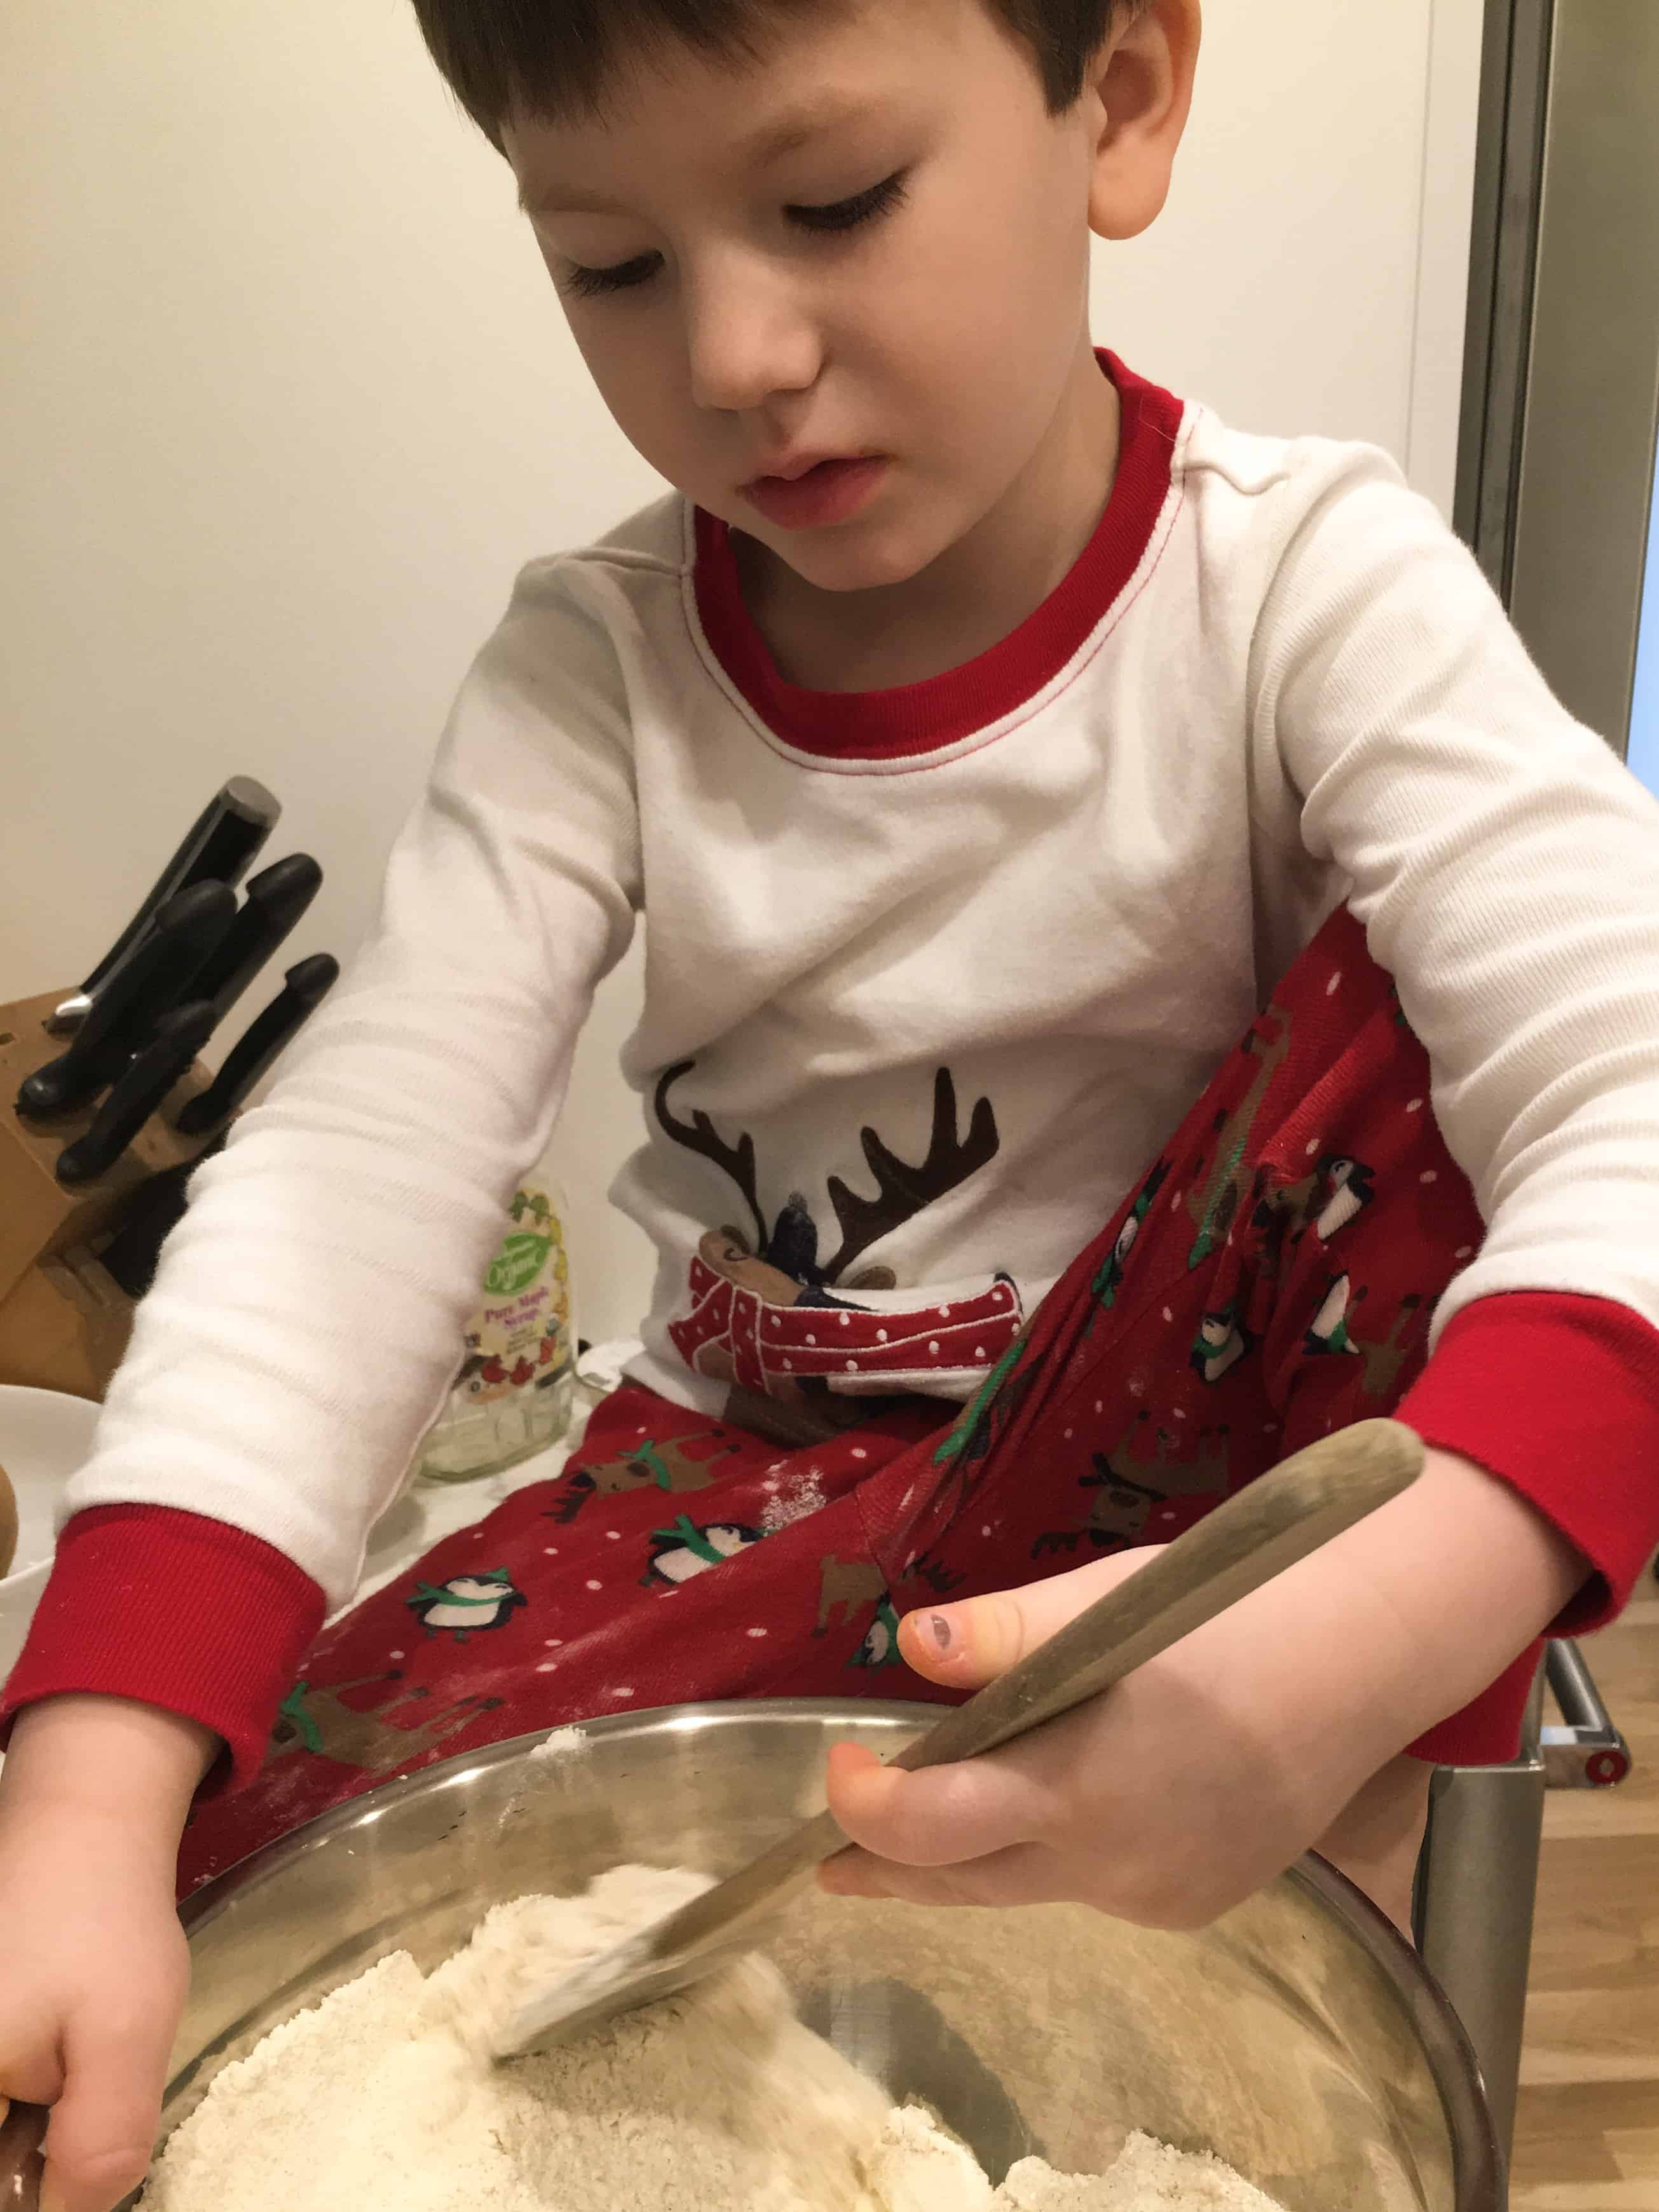 boy mixing dry ingredients in a bowl